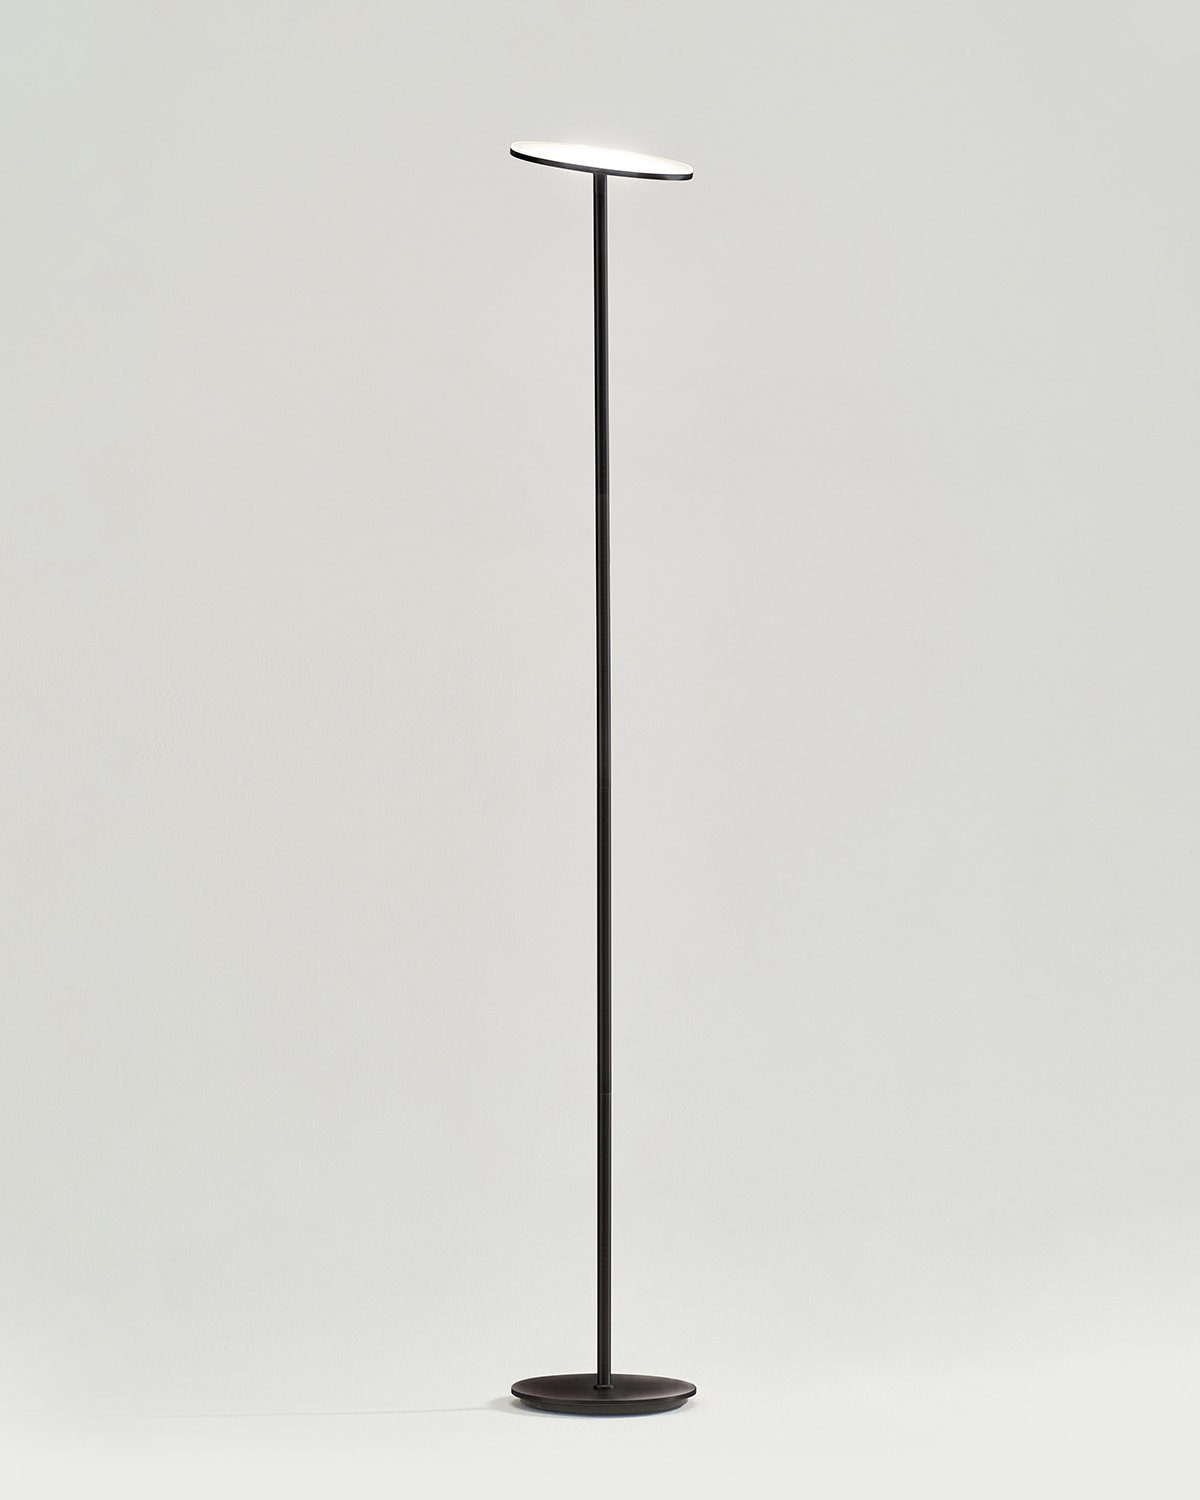 Brightech Sky Floor Lamp / Neighborhood Goods